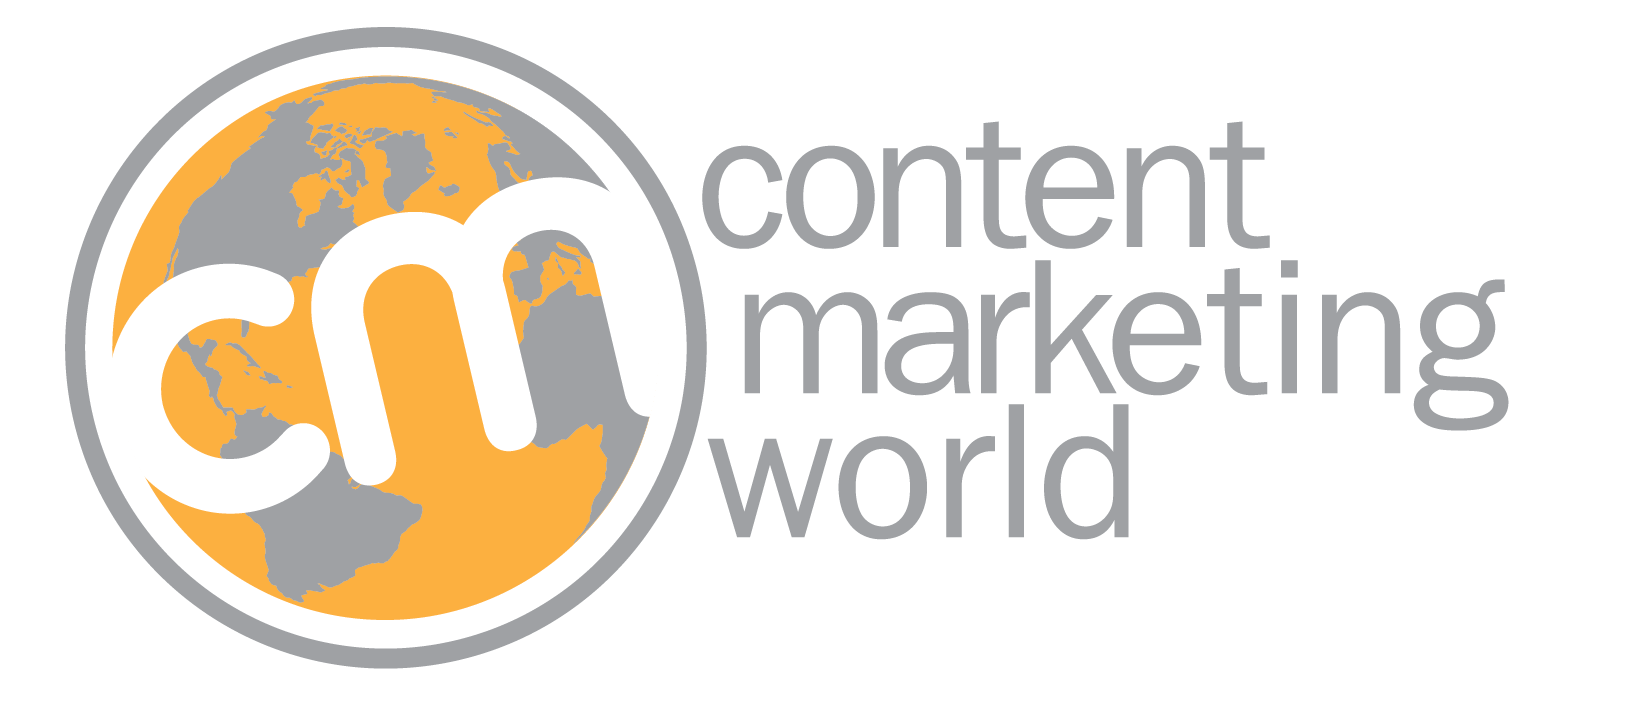 Content Marketing World - 2019 Marketing Event, Conference Content Marketing World